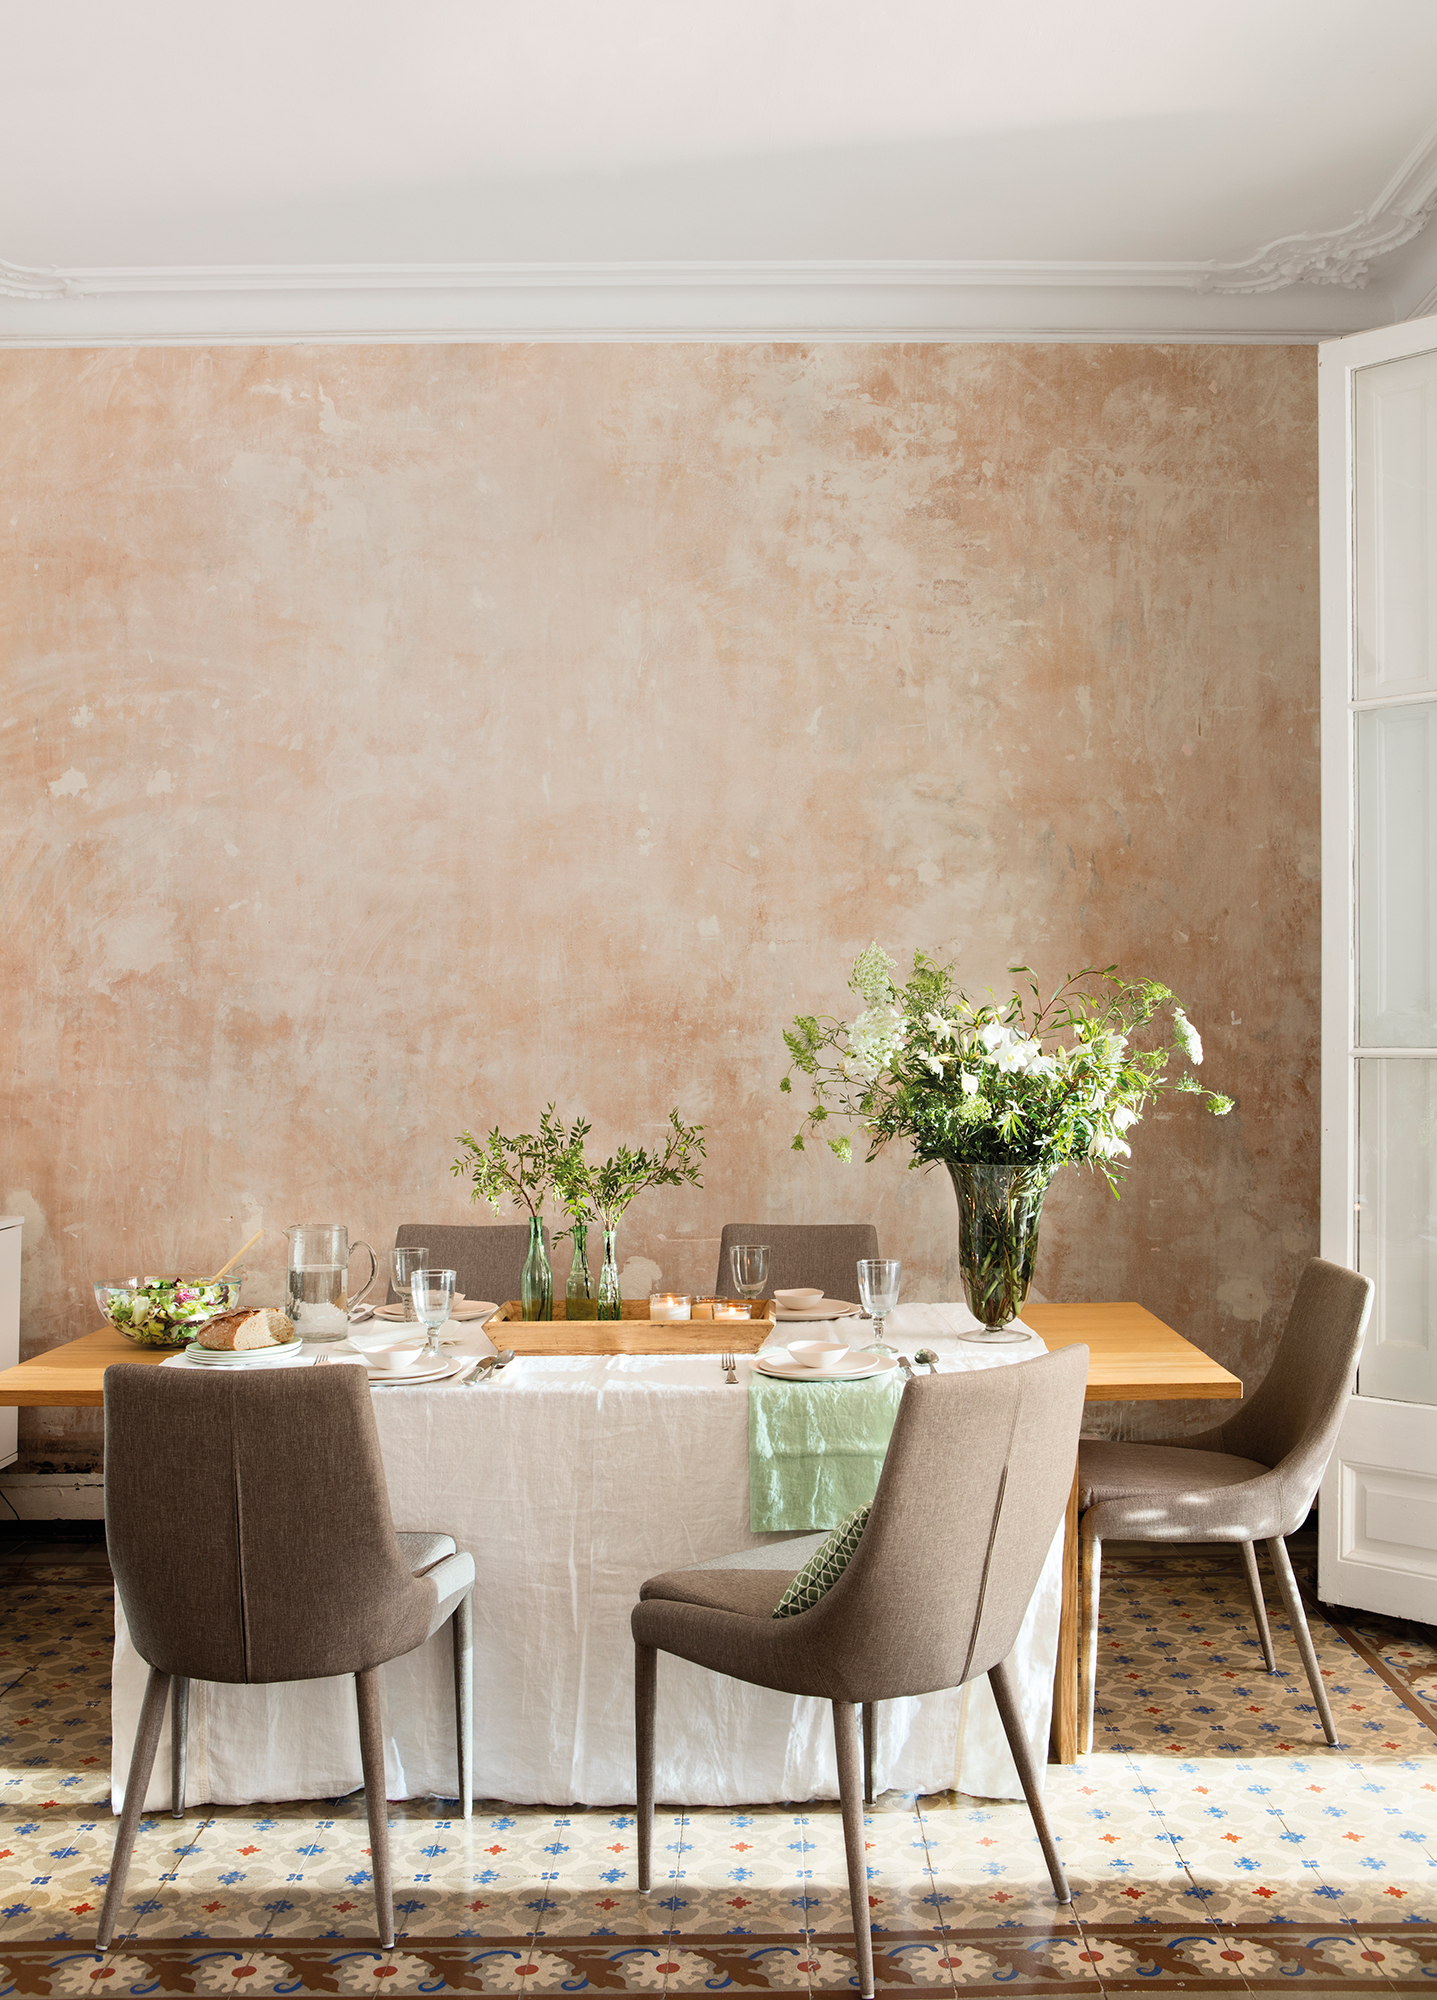 Comedor 15 ideas para decorar sus paredes - Paredes decorativas interiores ...